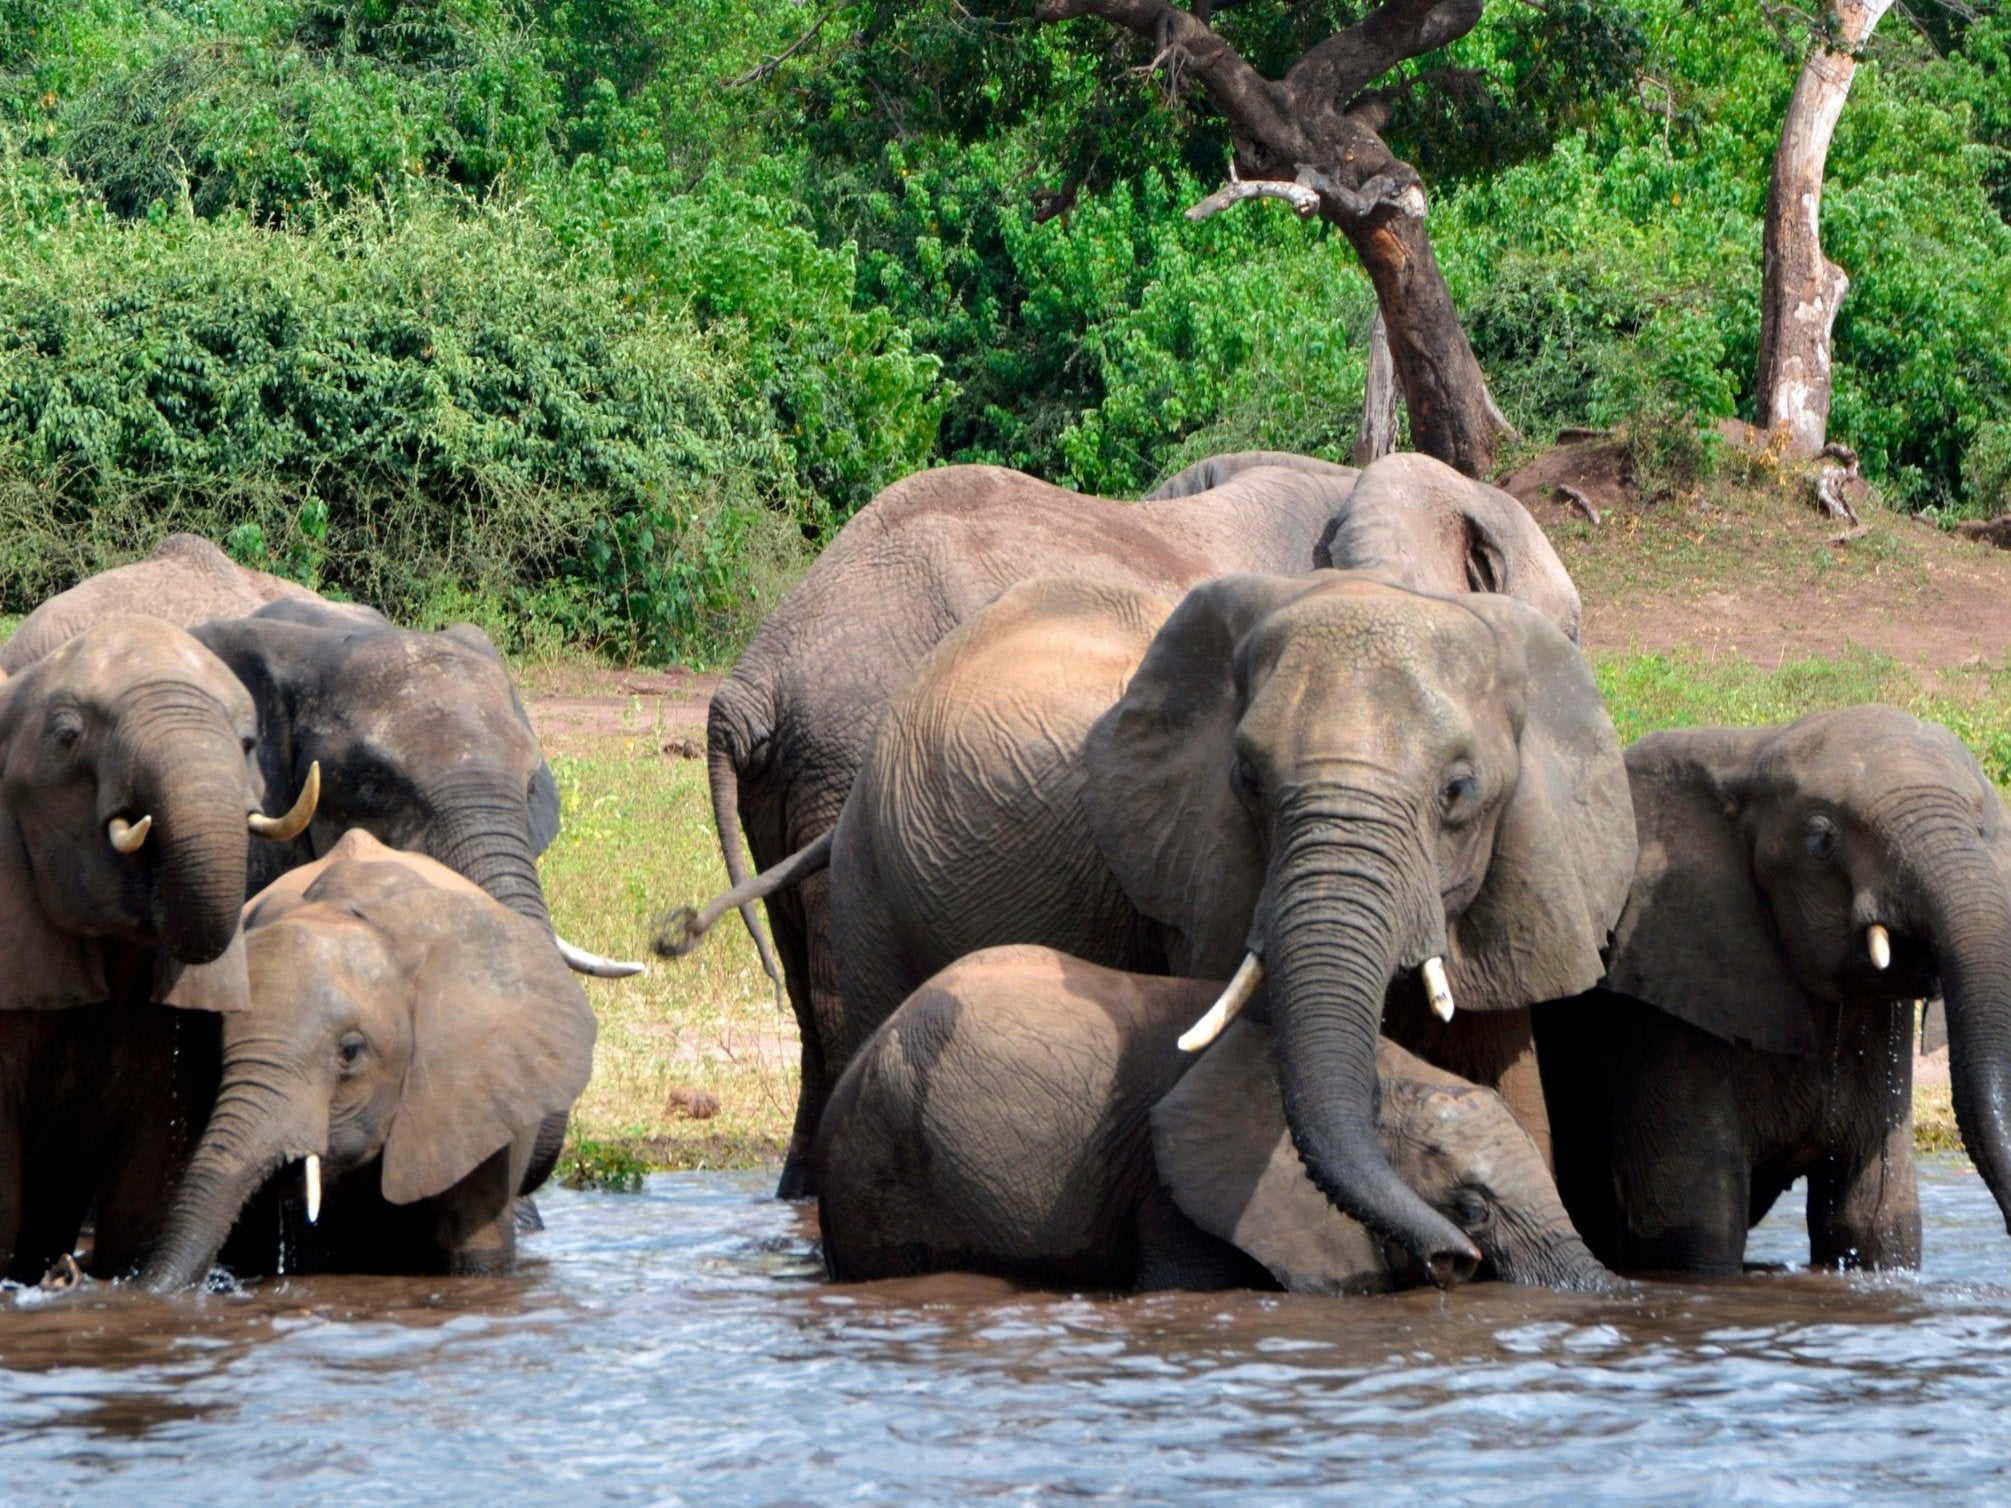 German tourist trampled to death by elephant in Zimbabwe as she tried to take photo